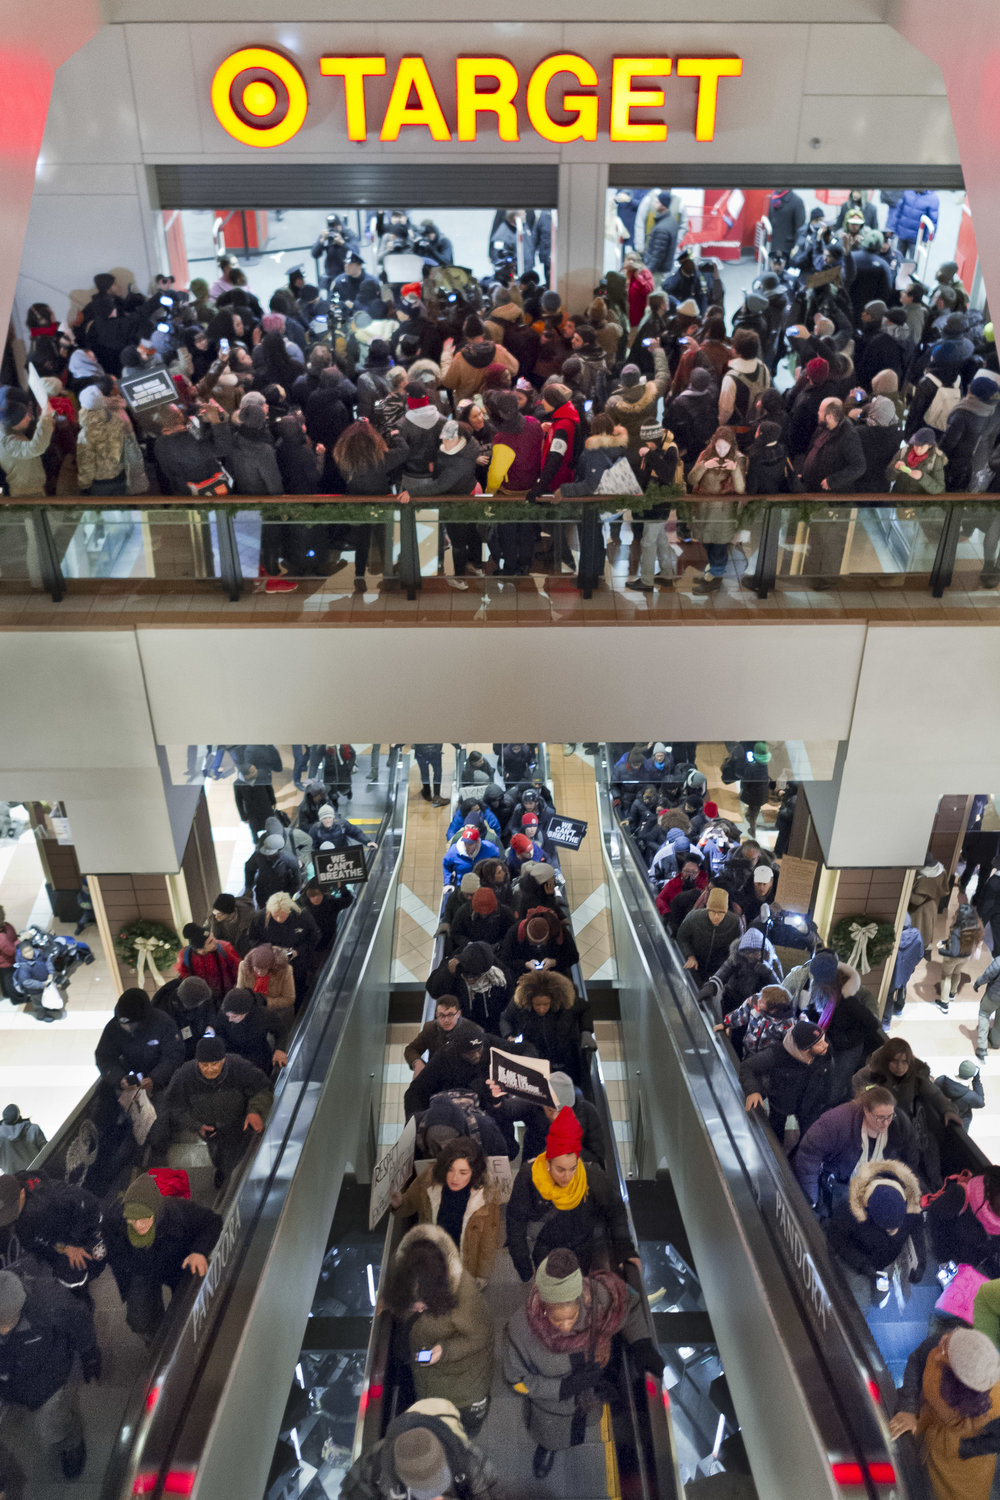 Demonstrators assemble at the Target inside the Atlantic Terminal shopping center on December 8th, 2014. Weeks of protest followed a Staten Island grand jury's decision on December 3rd 2014 not to indict Officer Daniel Pantaleo in the killing of Eric Garner.